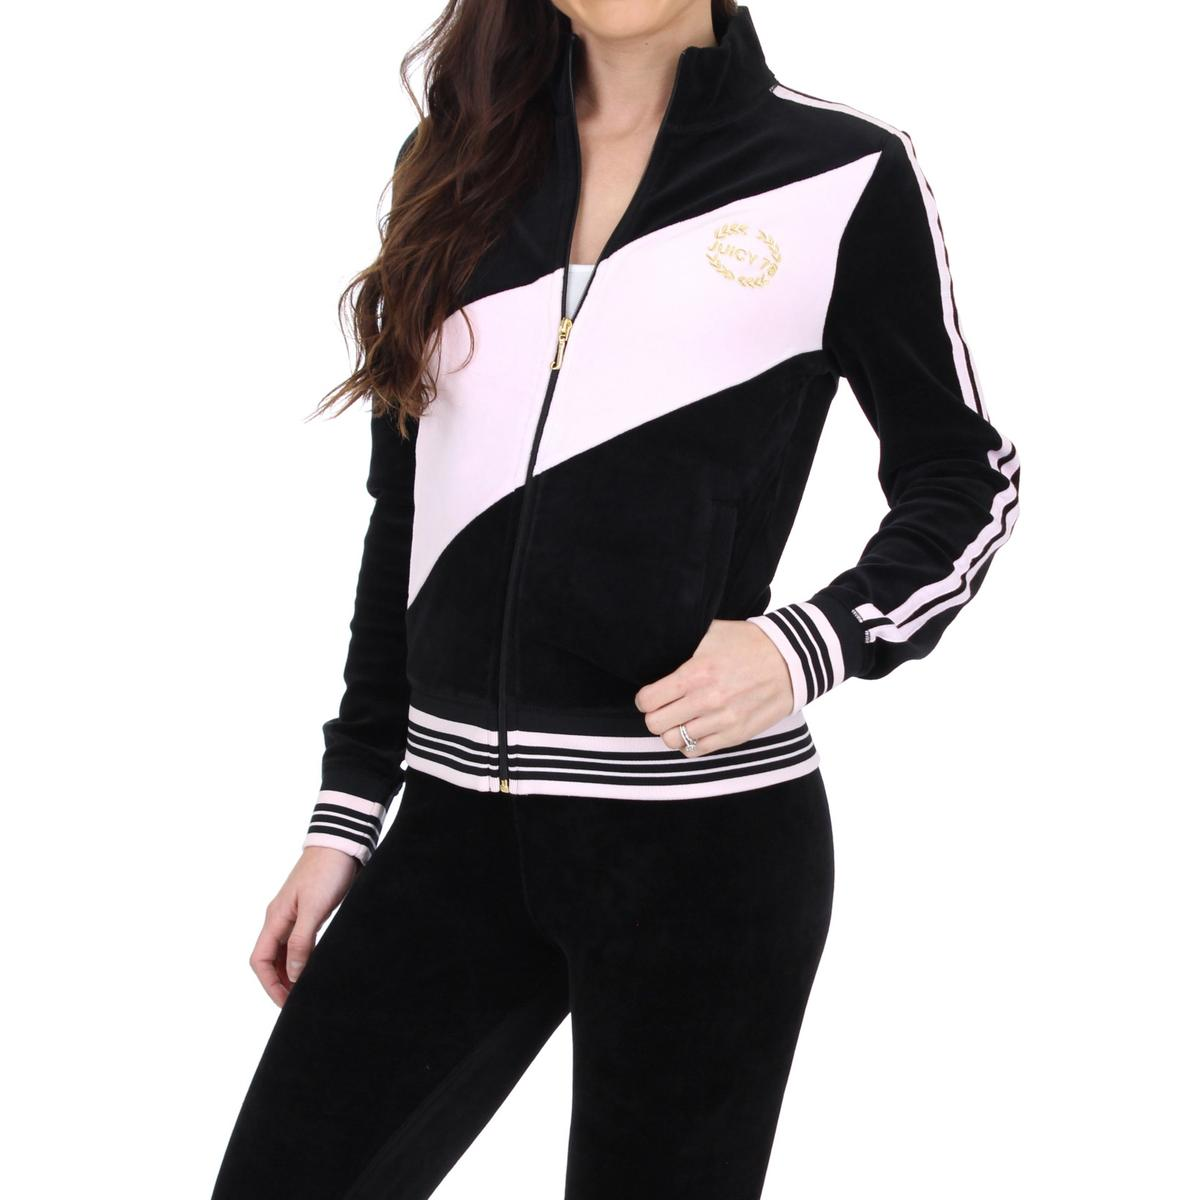 7dd2c763917a Details about Juicy Couture Black Label Womens Sporty Heritage Black Track  Jacket S BHFO 1689